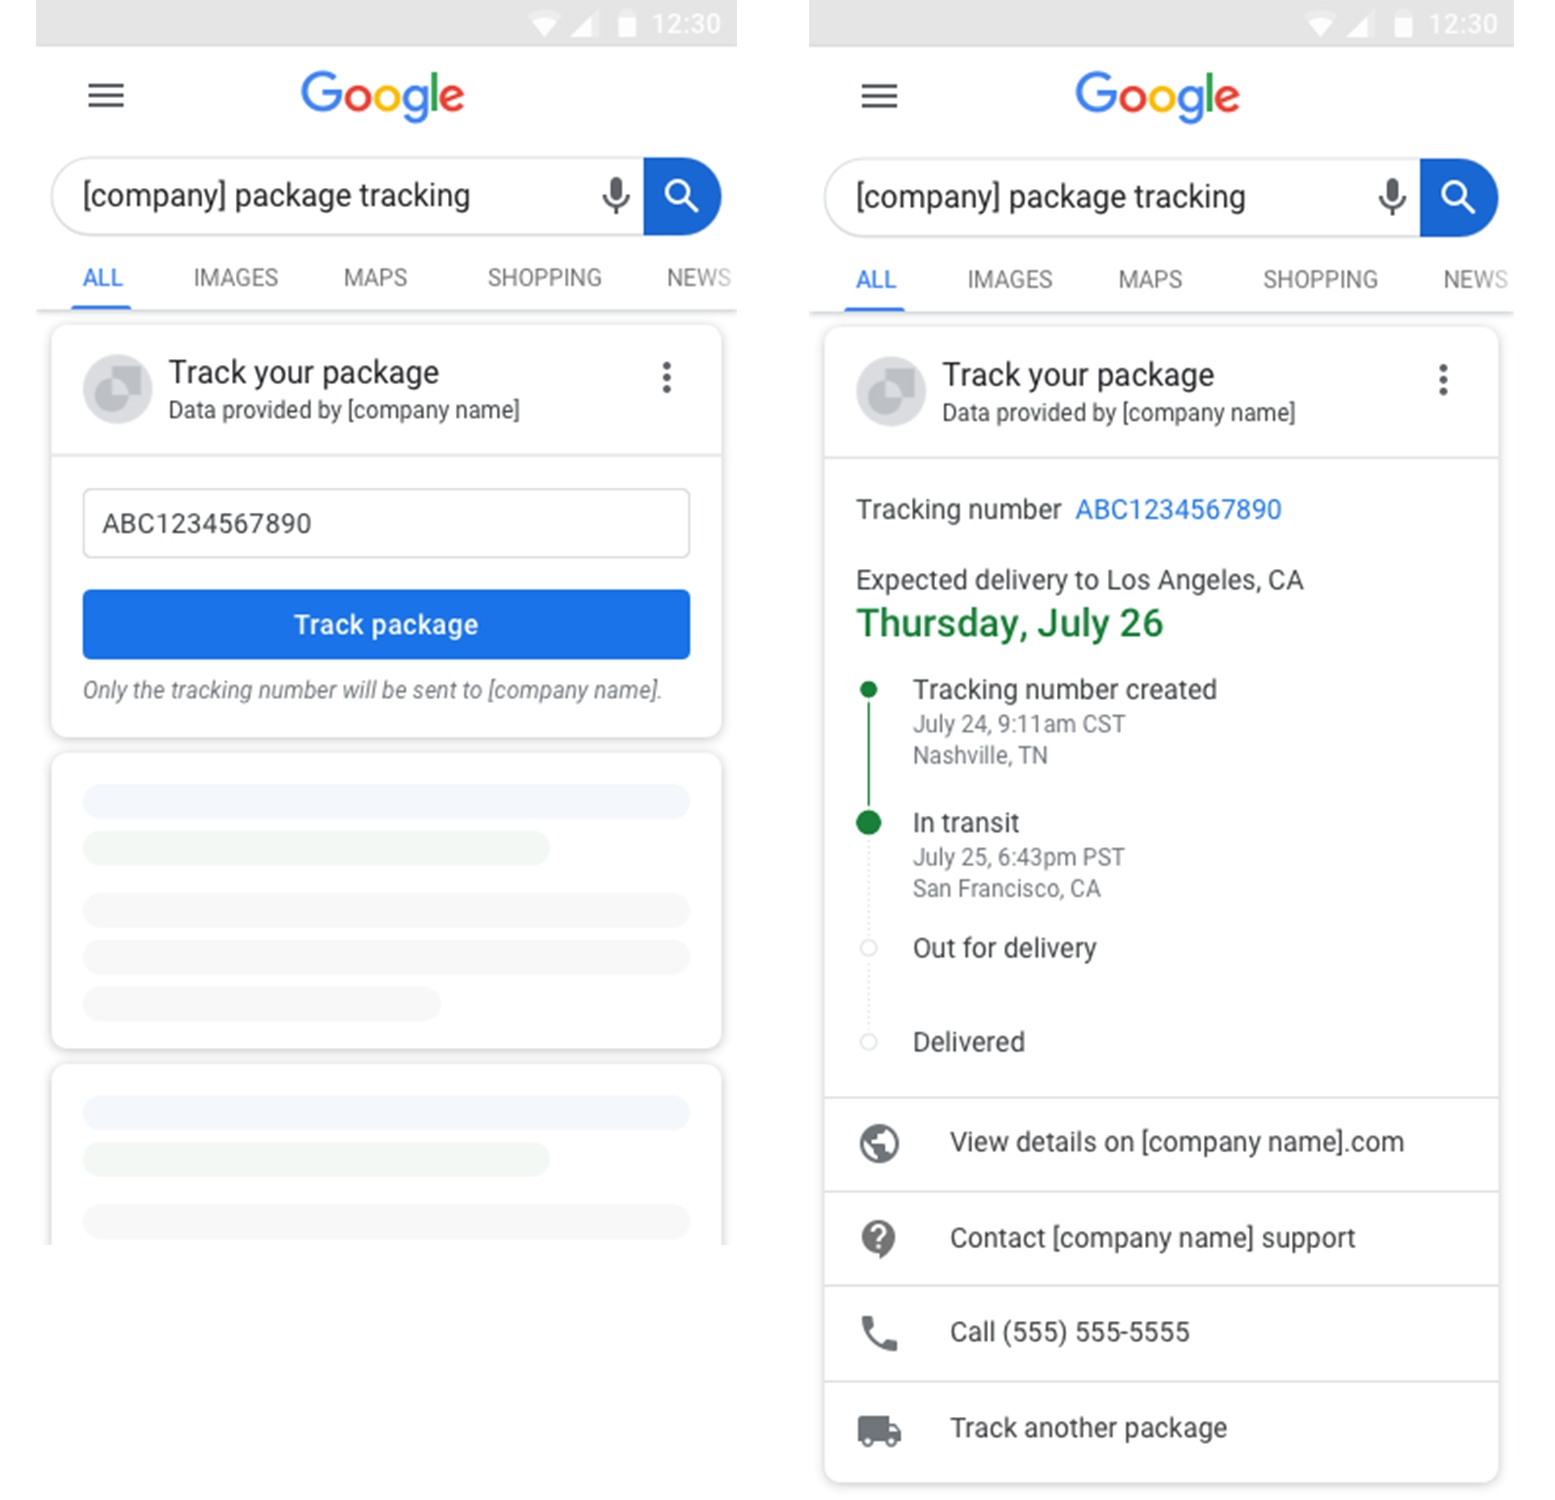 Google Adds a New Recommended Field CanReschedule for Package Tracking SERP Feature